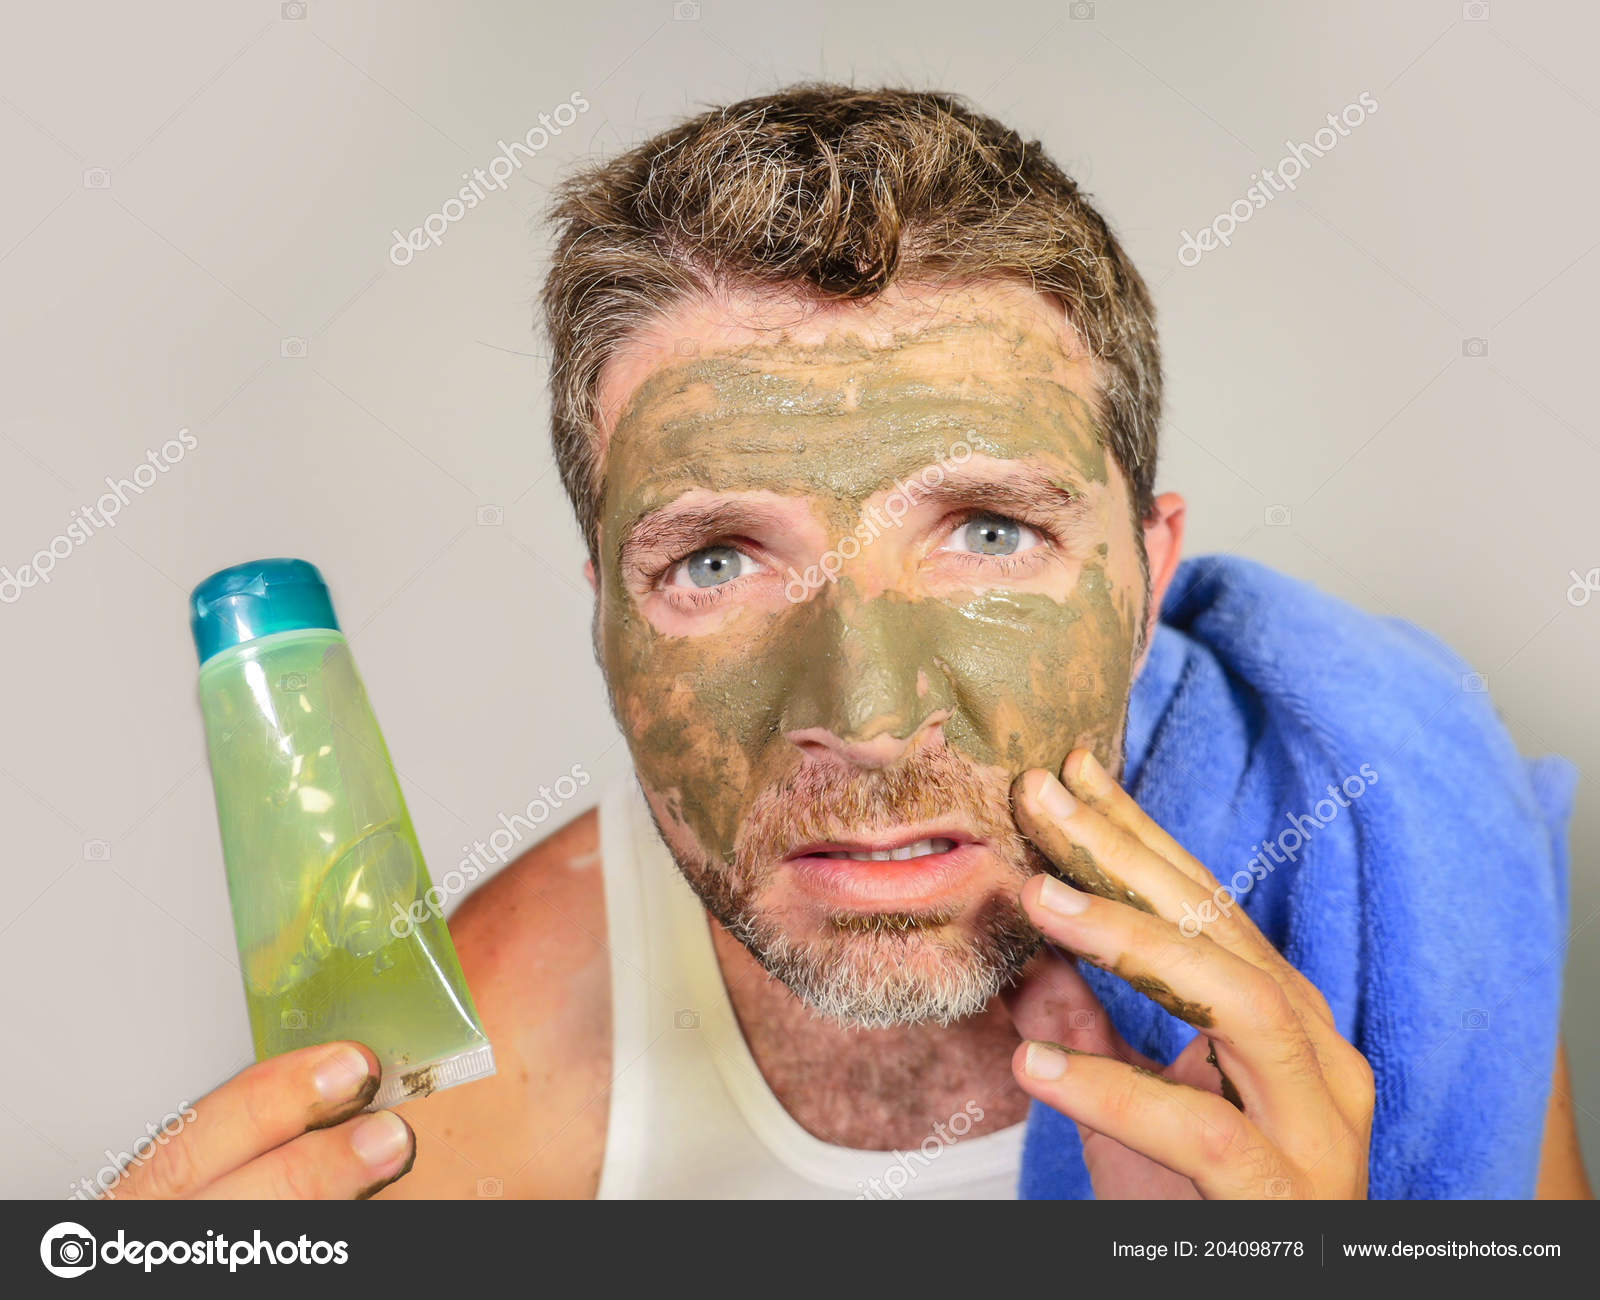 Man Holding Mirror Intended Portrait Of Young Messy Funny Man In Bathroom Mirror With Green Face Holding Cream Male Beauty Product Applying Facial Mask Feeling It Disgusting And Ugly Young Messy Funny Man Bathroom Mirror Green Face Holding